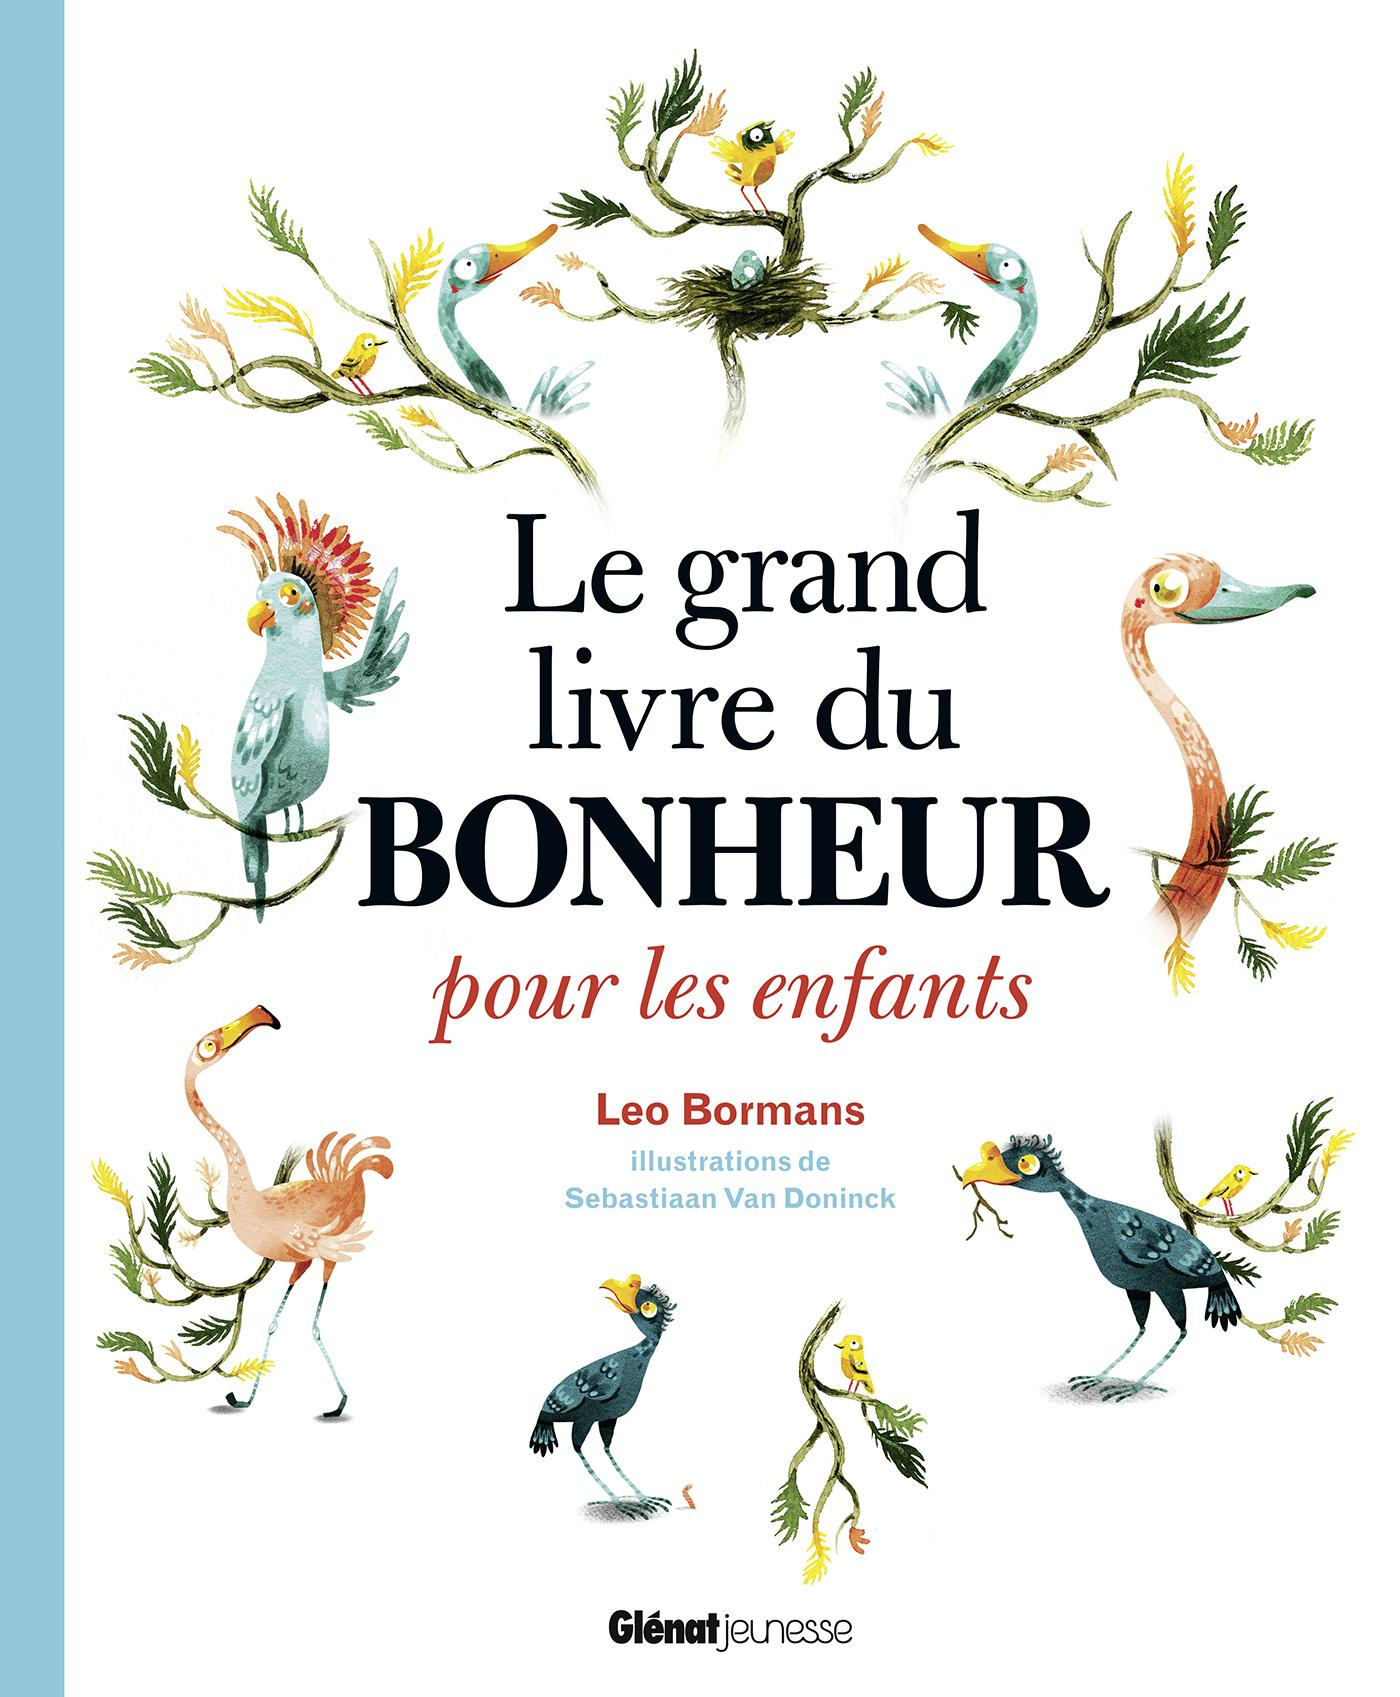 le grand livre du bonheur pour les enfants leo bormans sebastiaan van doninck belgique. Black Bedroom Furniture Sets. Home Design Ideas